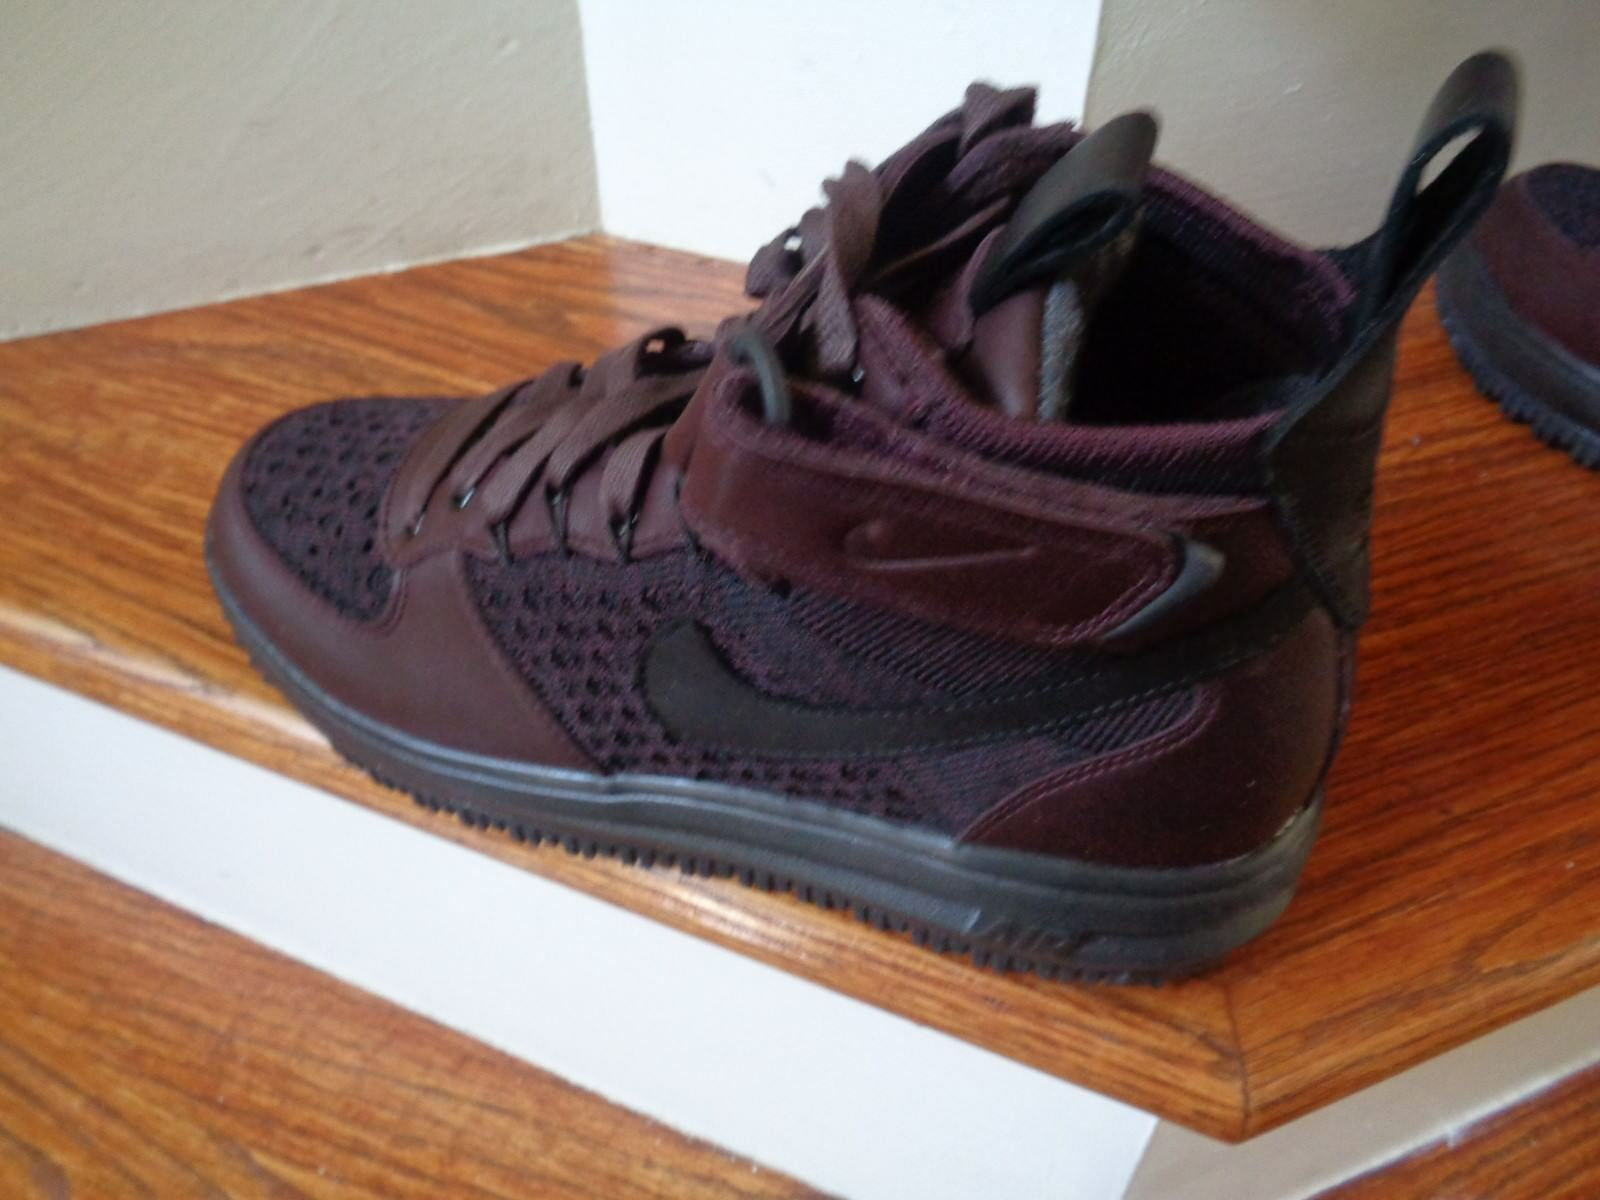 Nike Lunar Force 1 Fkyknit Workboot Men's Boots, 855984 600 Size 10 NEW